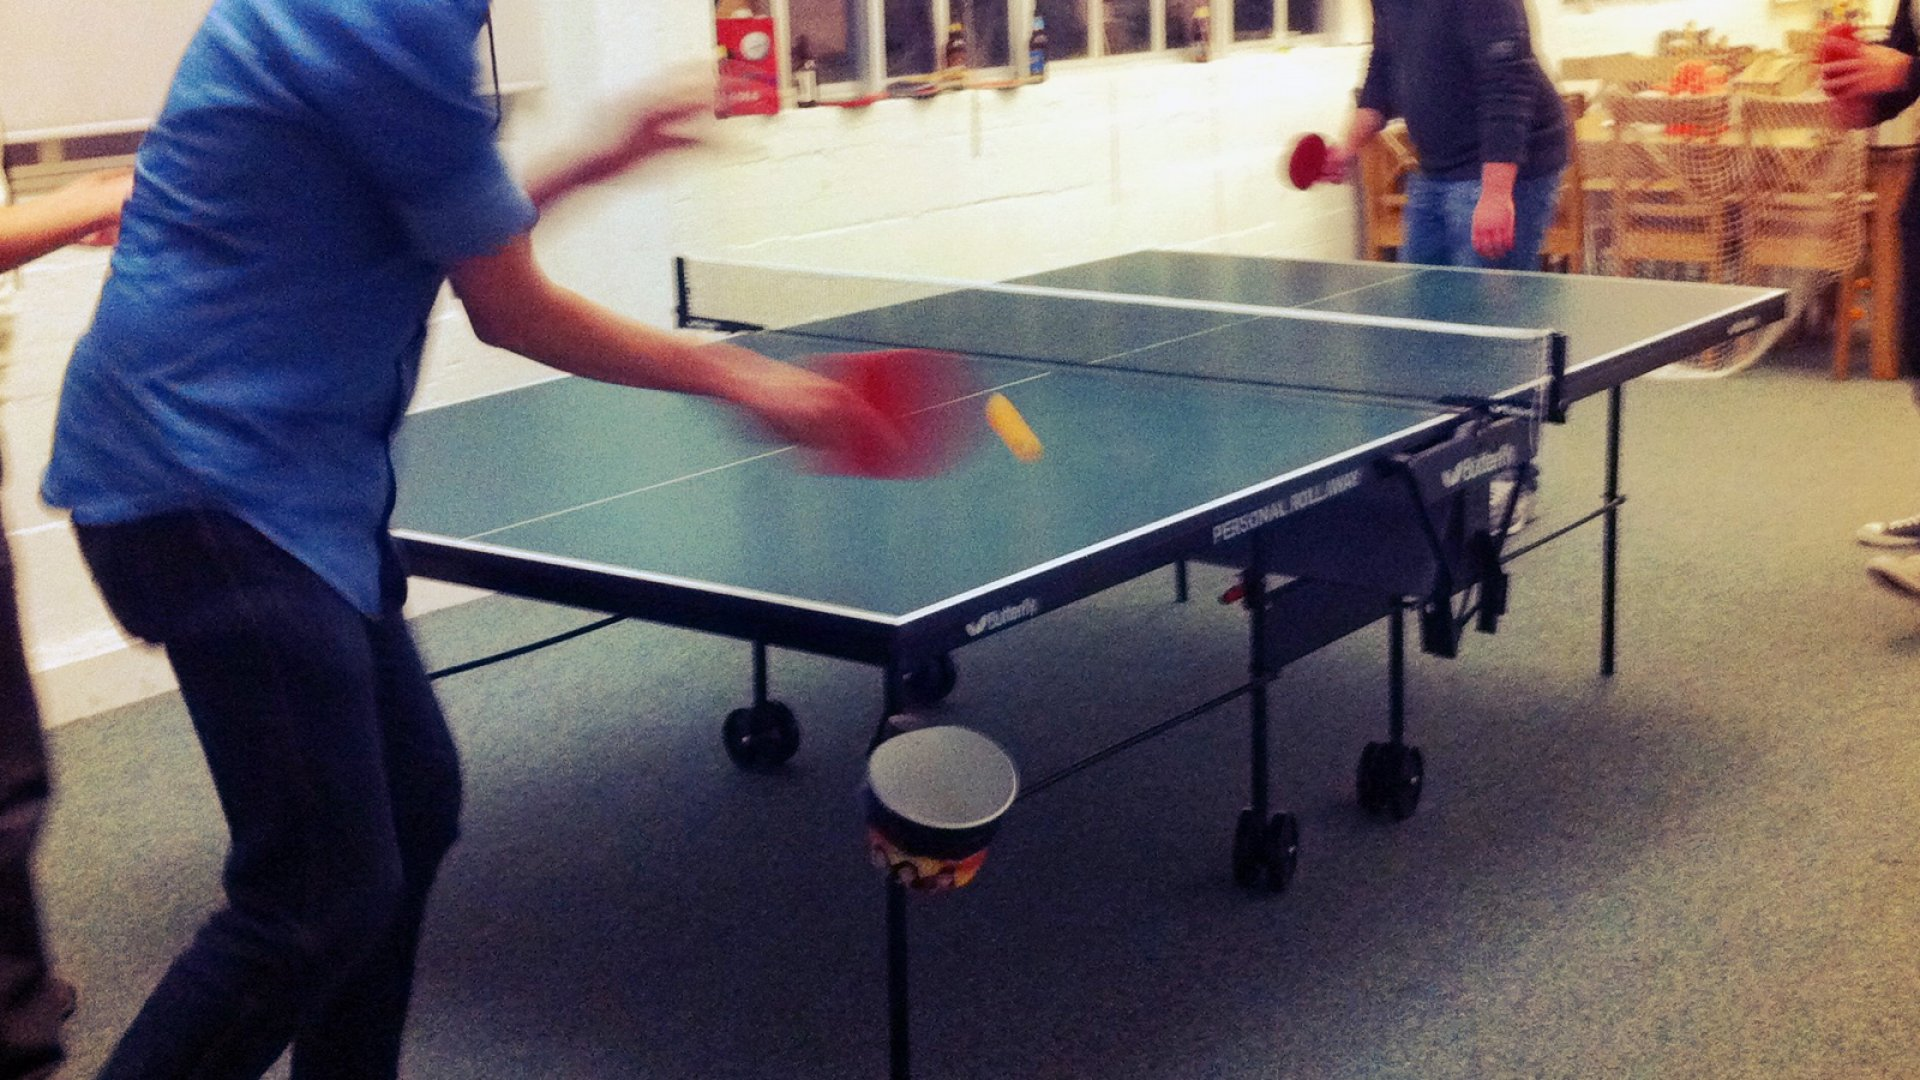 This Company's Secret Hiring Weapon? Ping-Pong